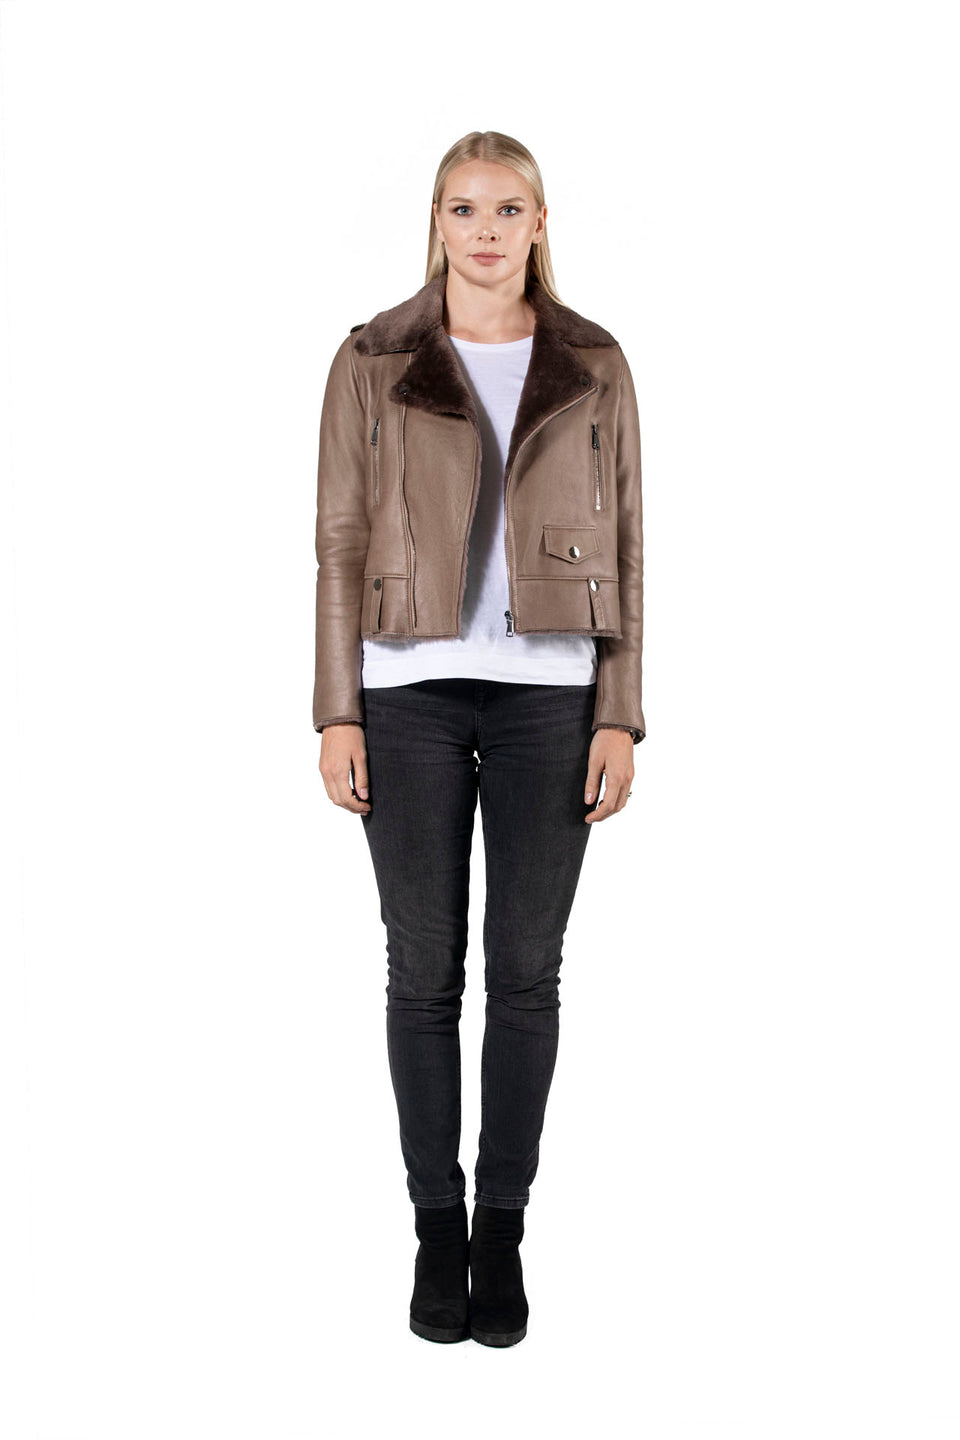 Adel - Women's Shearling Zipper Jacket Fashion 2020